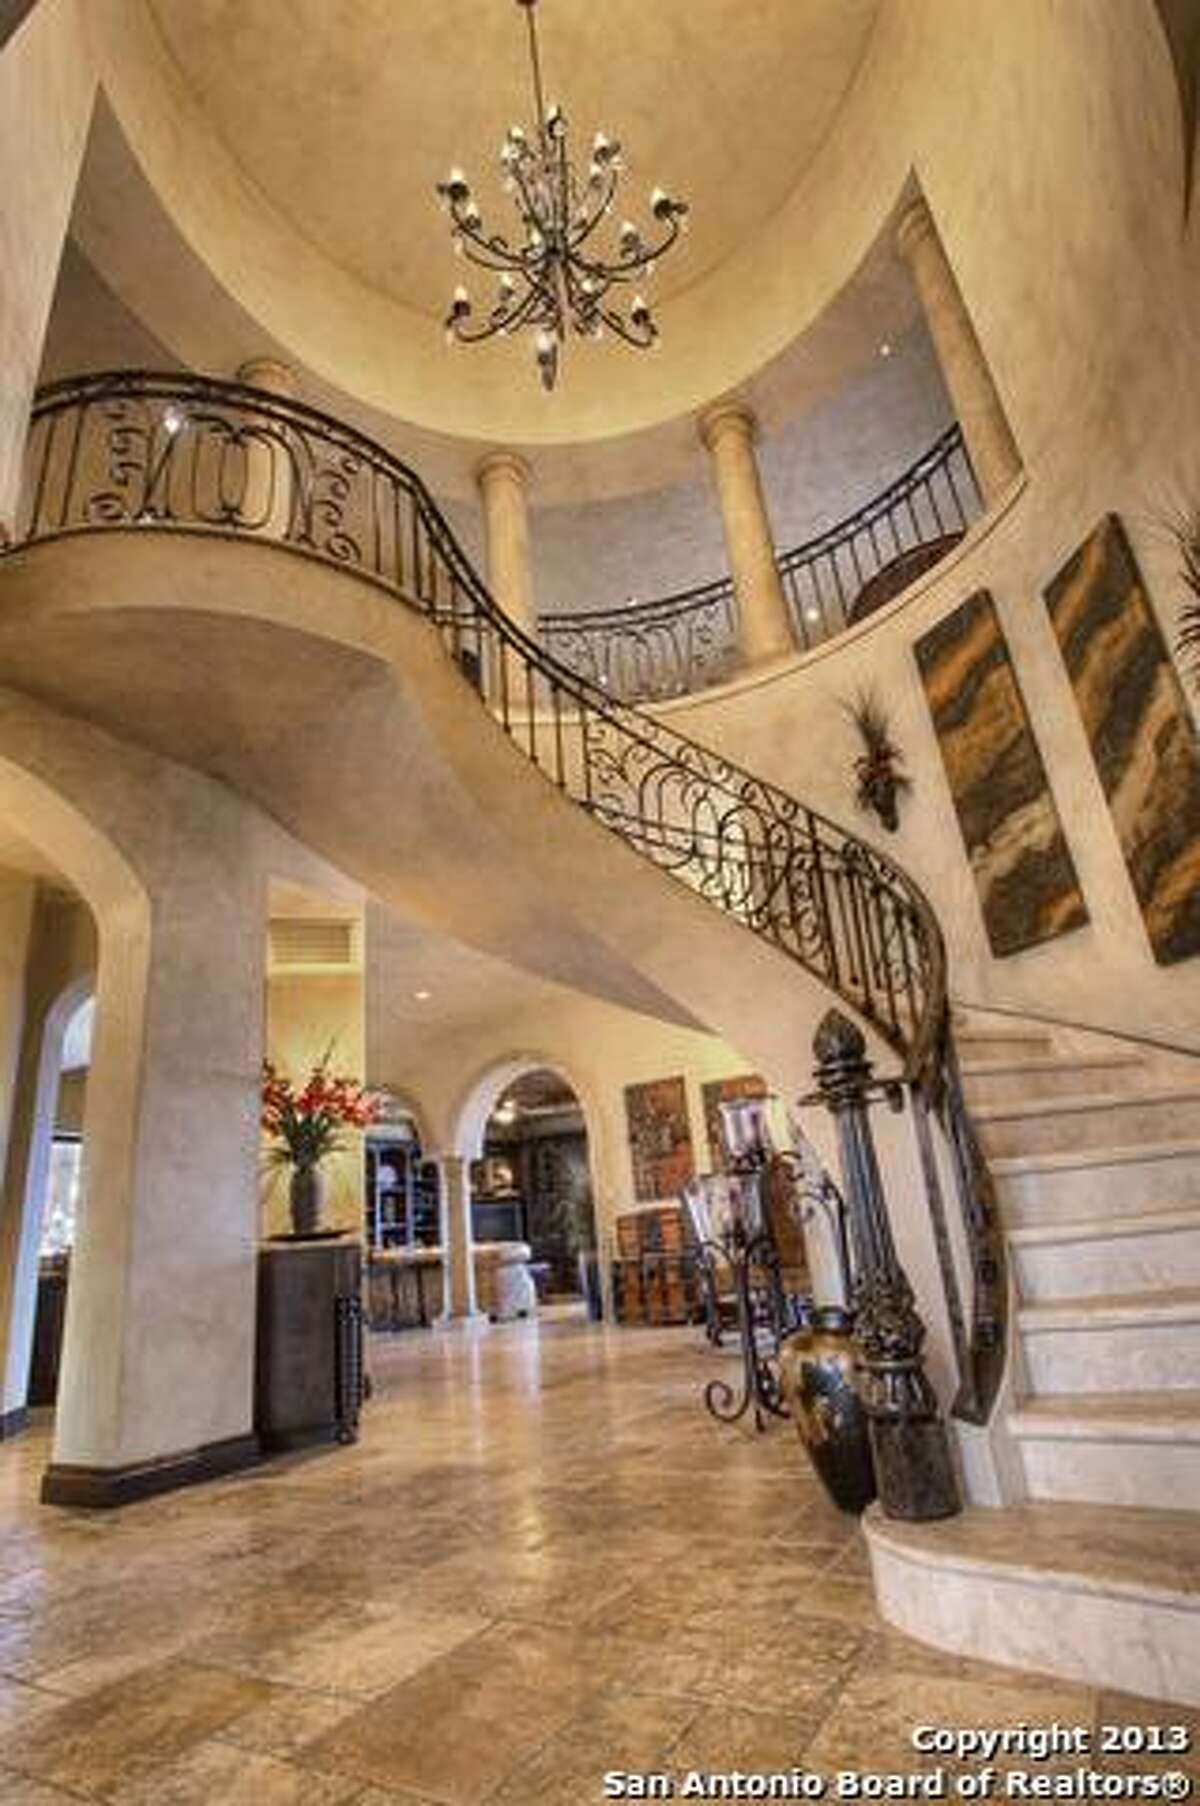 Perched upon the precipice of a majestic hilltop with views for miles, this grand estate is a turn-key, completely furnished, magnificent offering. Asking price: $3,500,000 215 Majestic Ridge Comfort, TX Features: Bedrooms: 4Baths, 5, 1 Partial Baths9,315 Sq FtListing: Keller Williams Realty Luxury